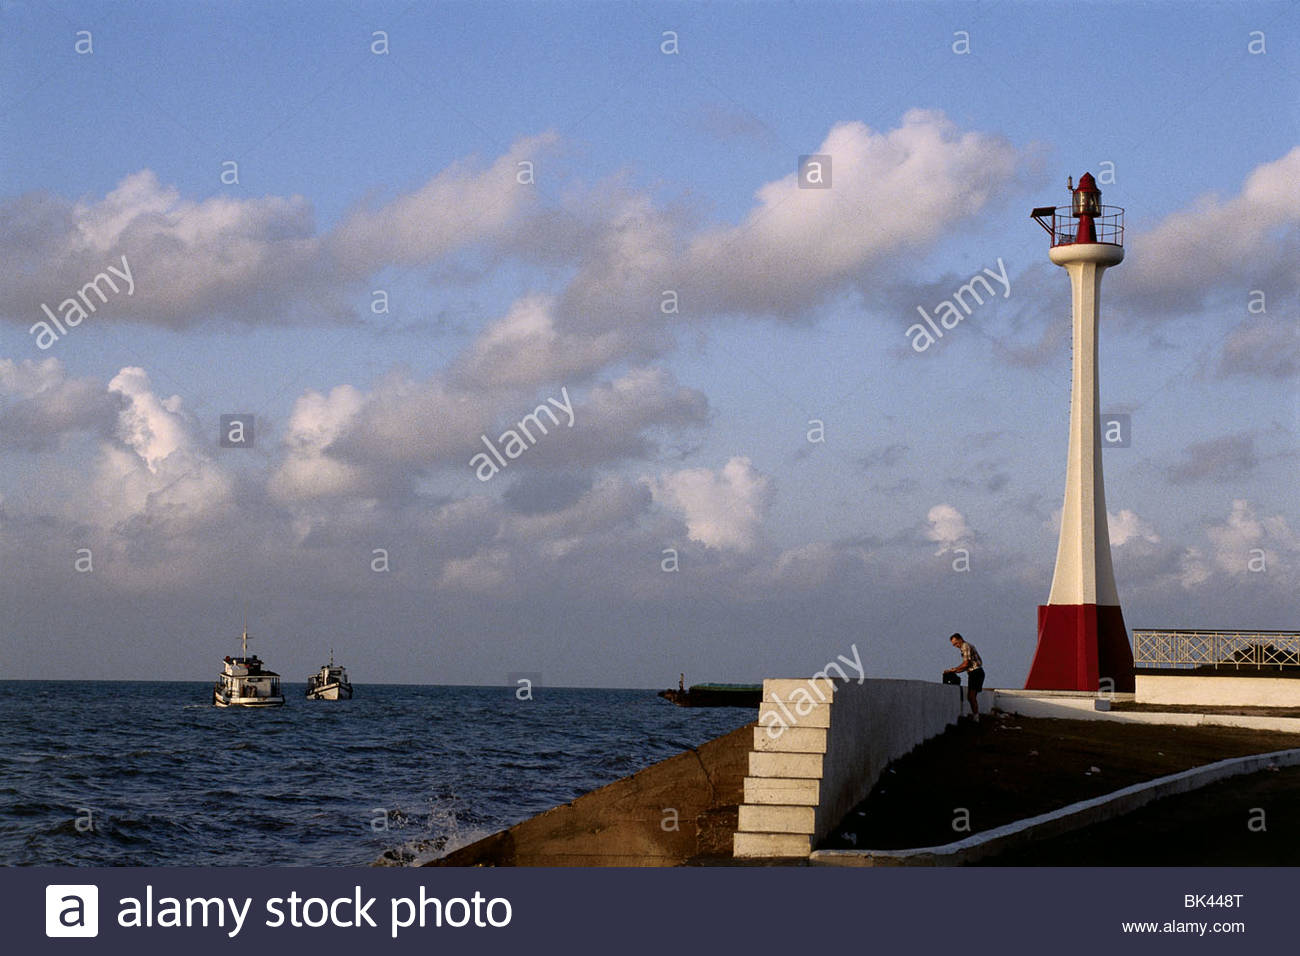 Baron Bliss Tomb Belize City, Belize City and the Baron Bliss Lighthouse, a tribute to Henry ...